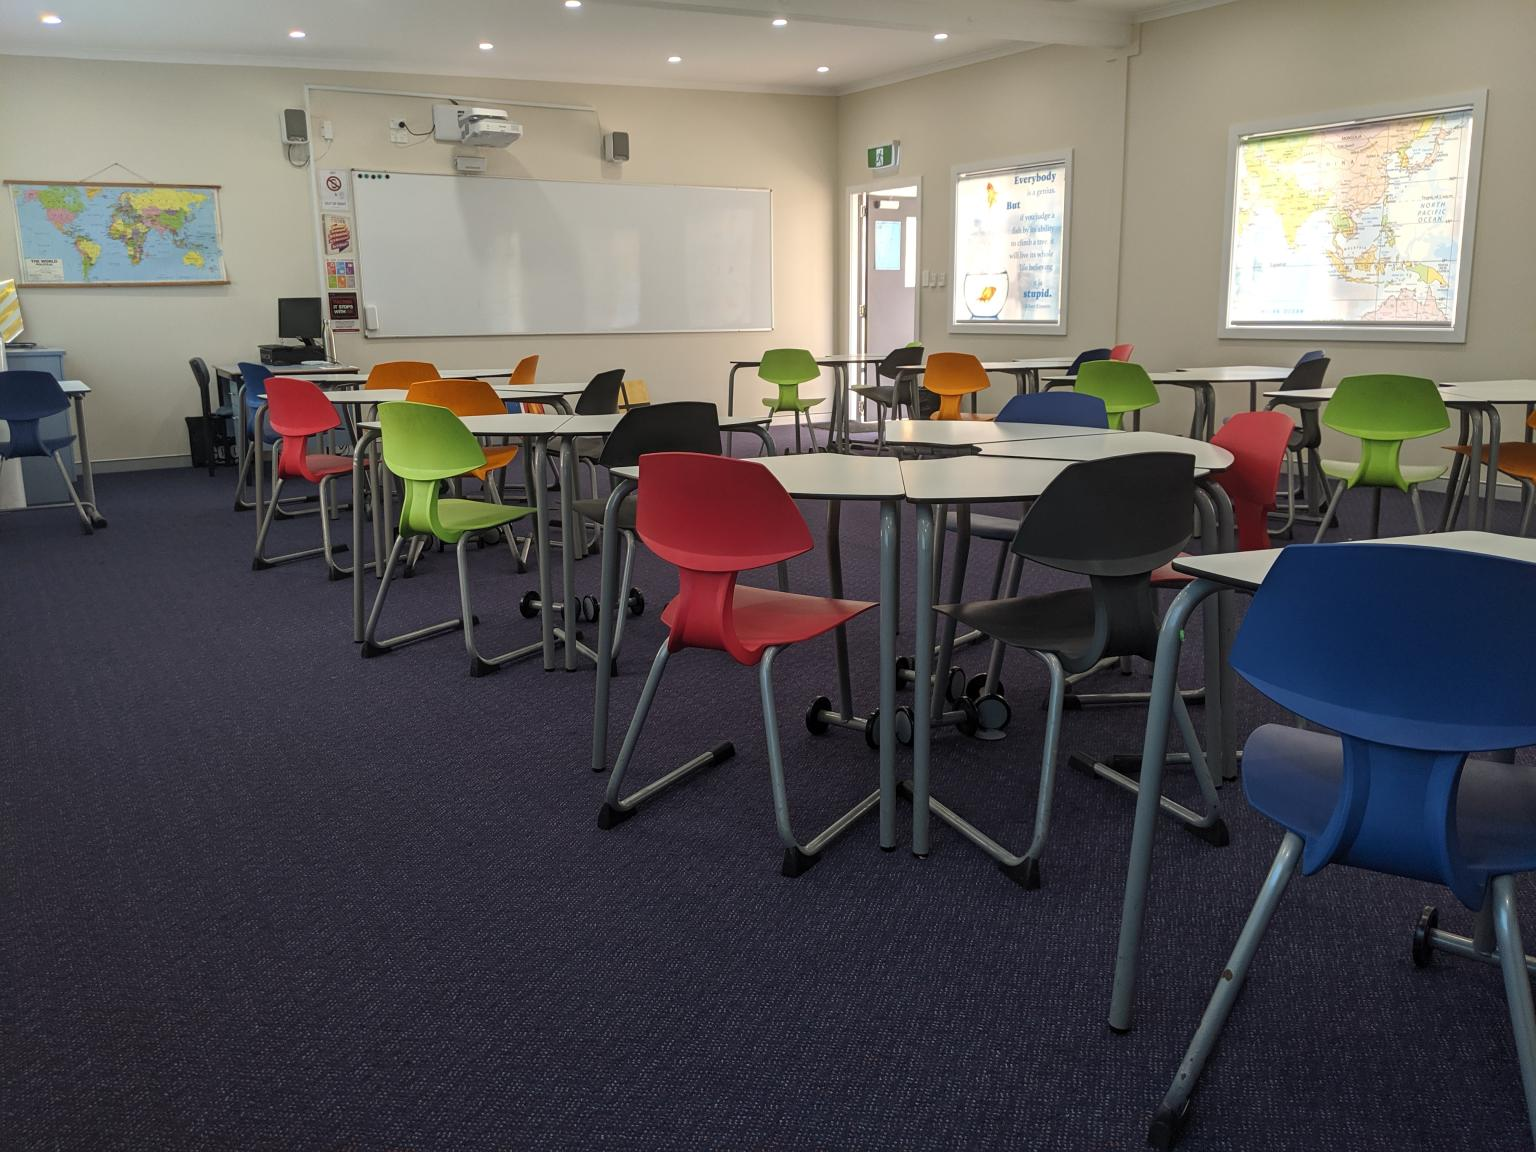 colourful demountable classroom desks